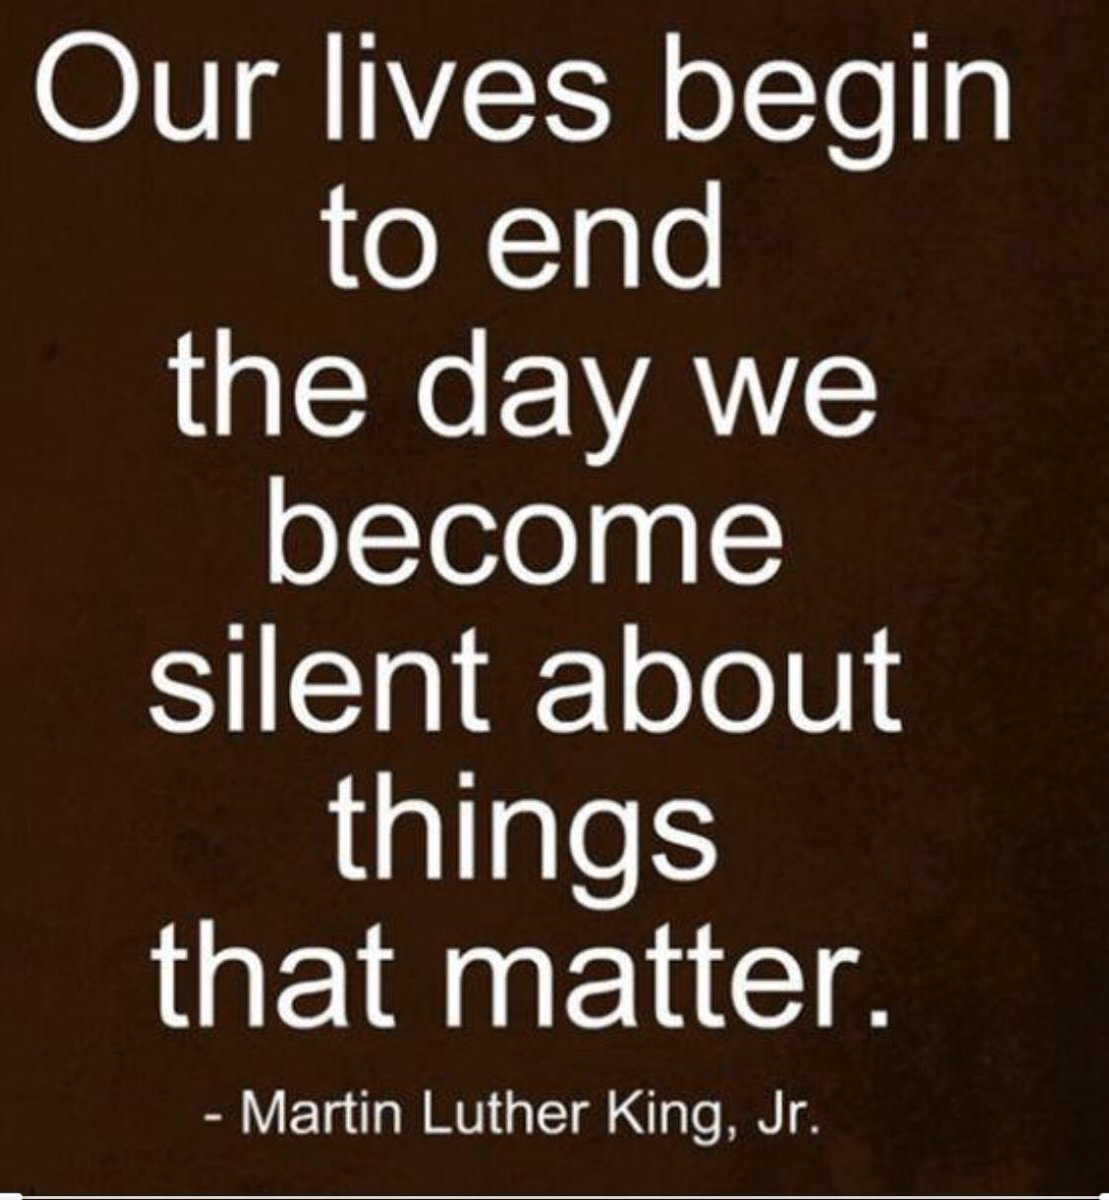 """Our lives begin to end the day we become silent about things that matter."" -Dr. Martin Luther King Jr  Always stand up for your beliefs. Always stand up for your students.  #BuildHOPEedu #bekindEDU #tlap #LeadLAP #edchat #engagechat #BeTheOne #JoyfulLeaders #LearnLAP #eduAR"